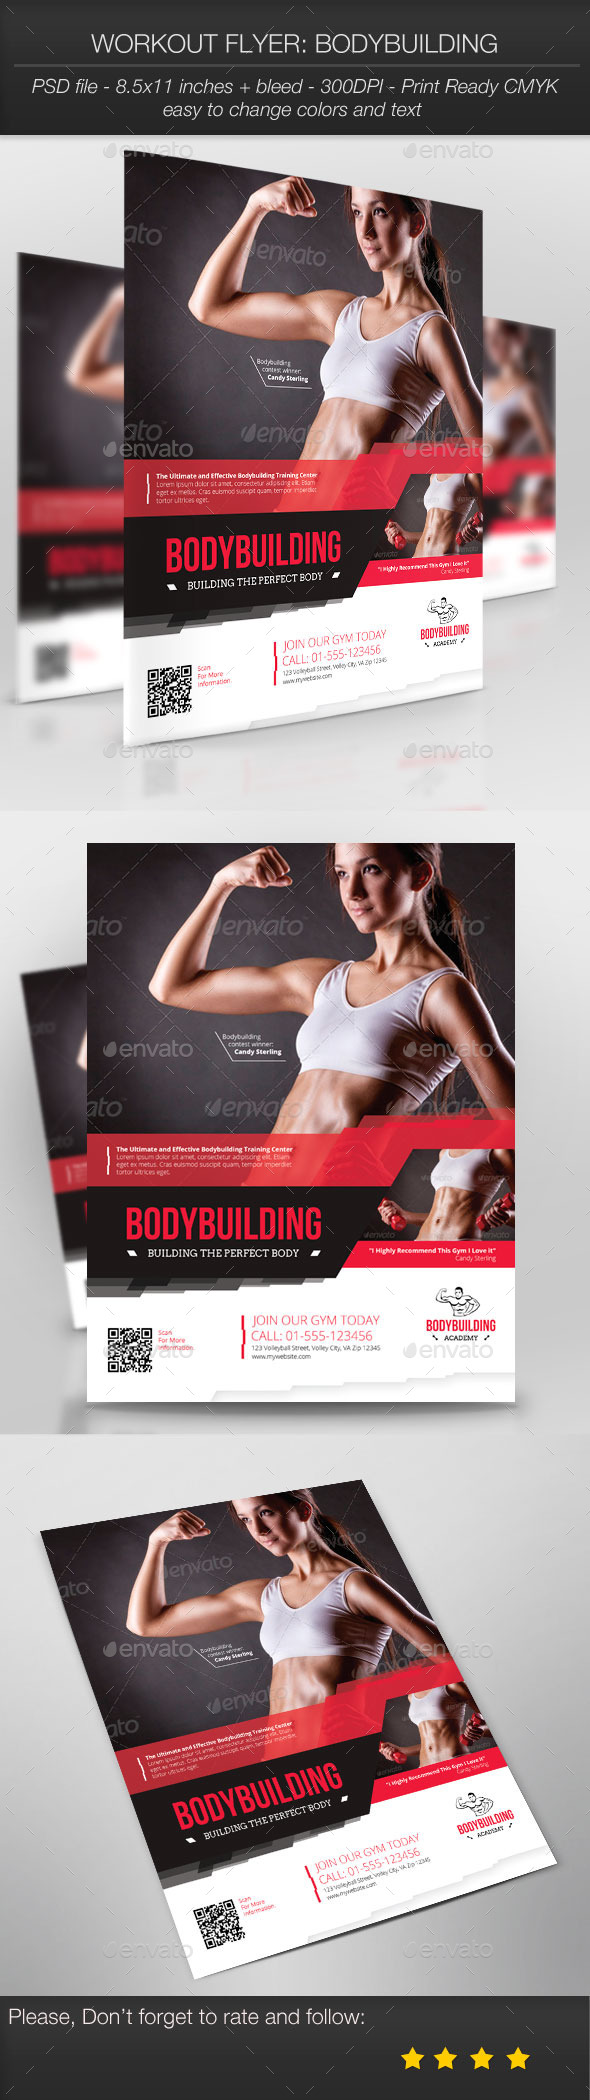 Workout Flyer: Bodybuilding - Sports Events